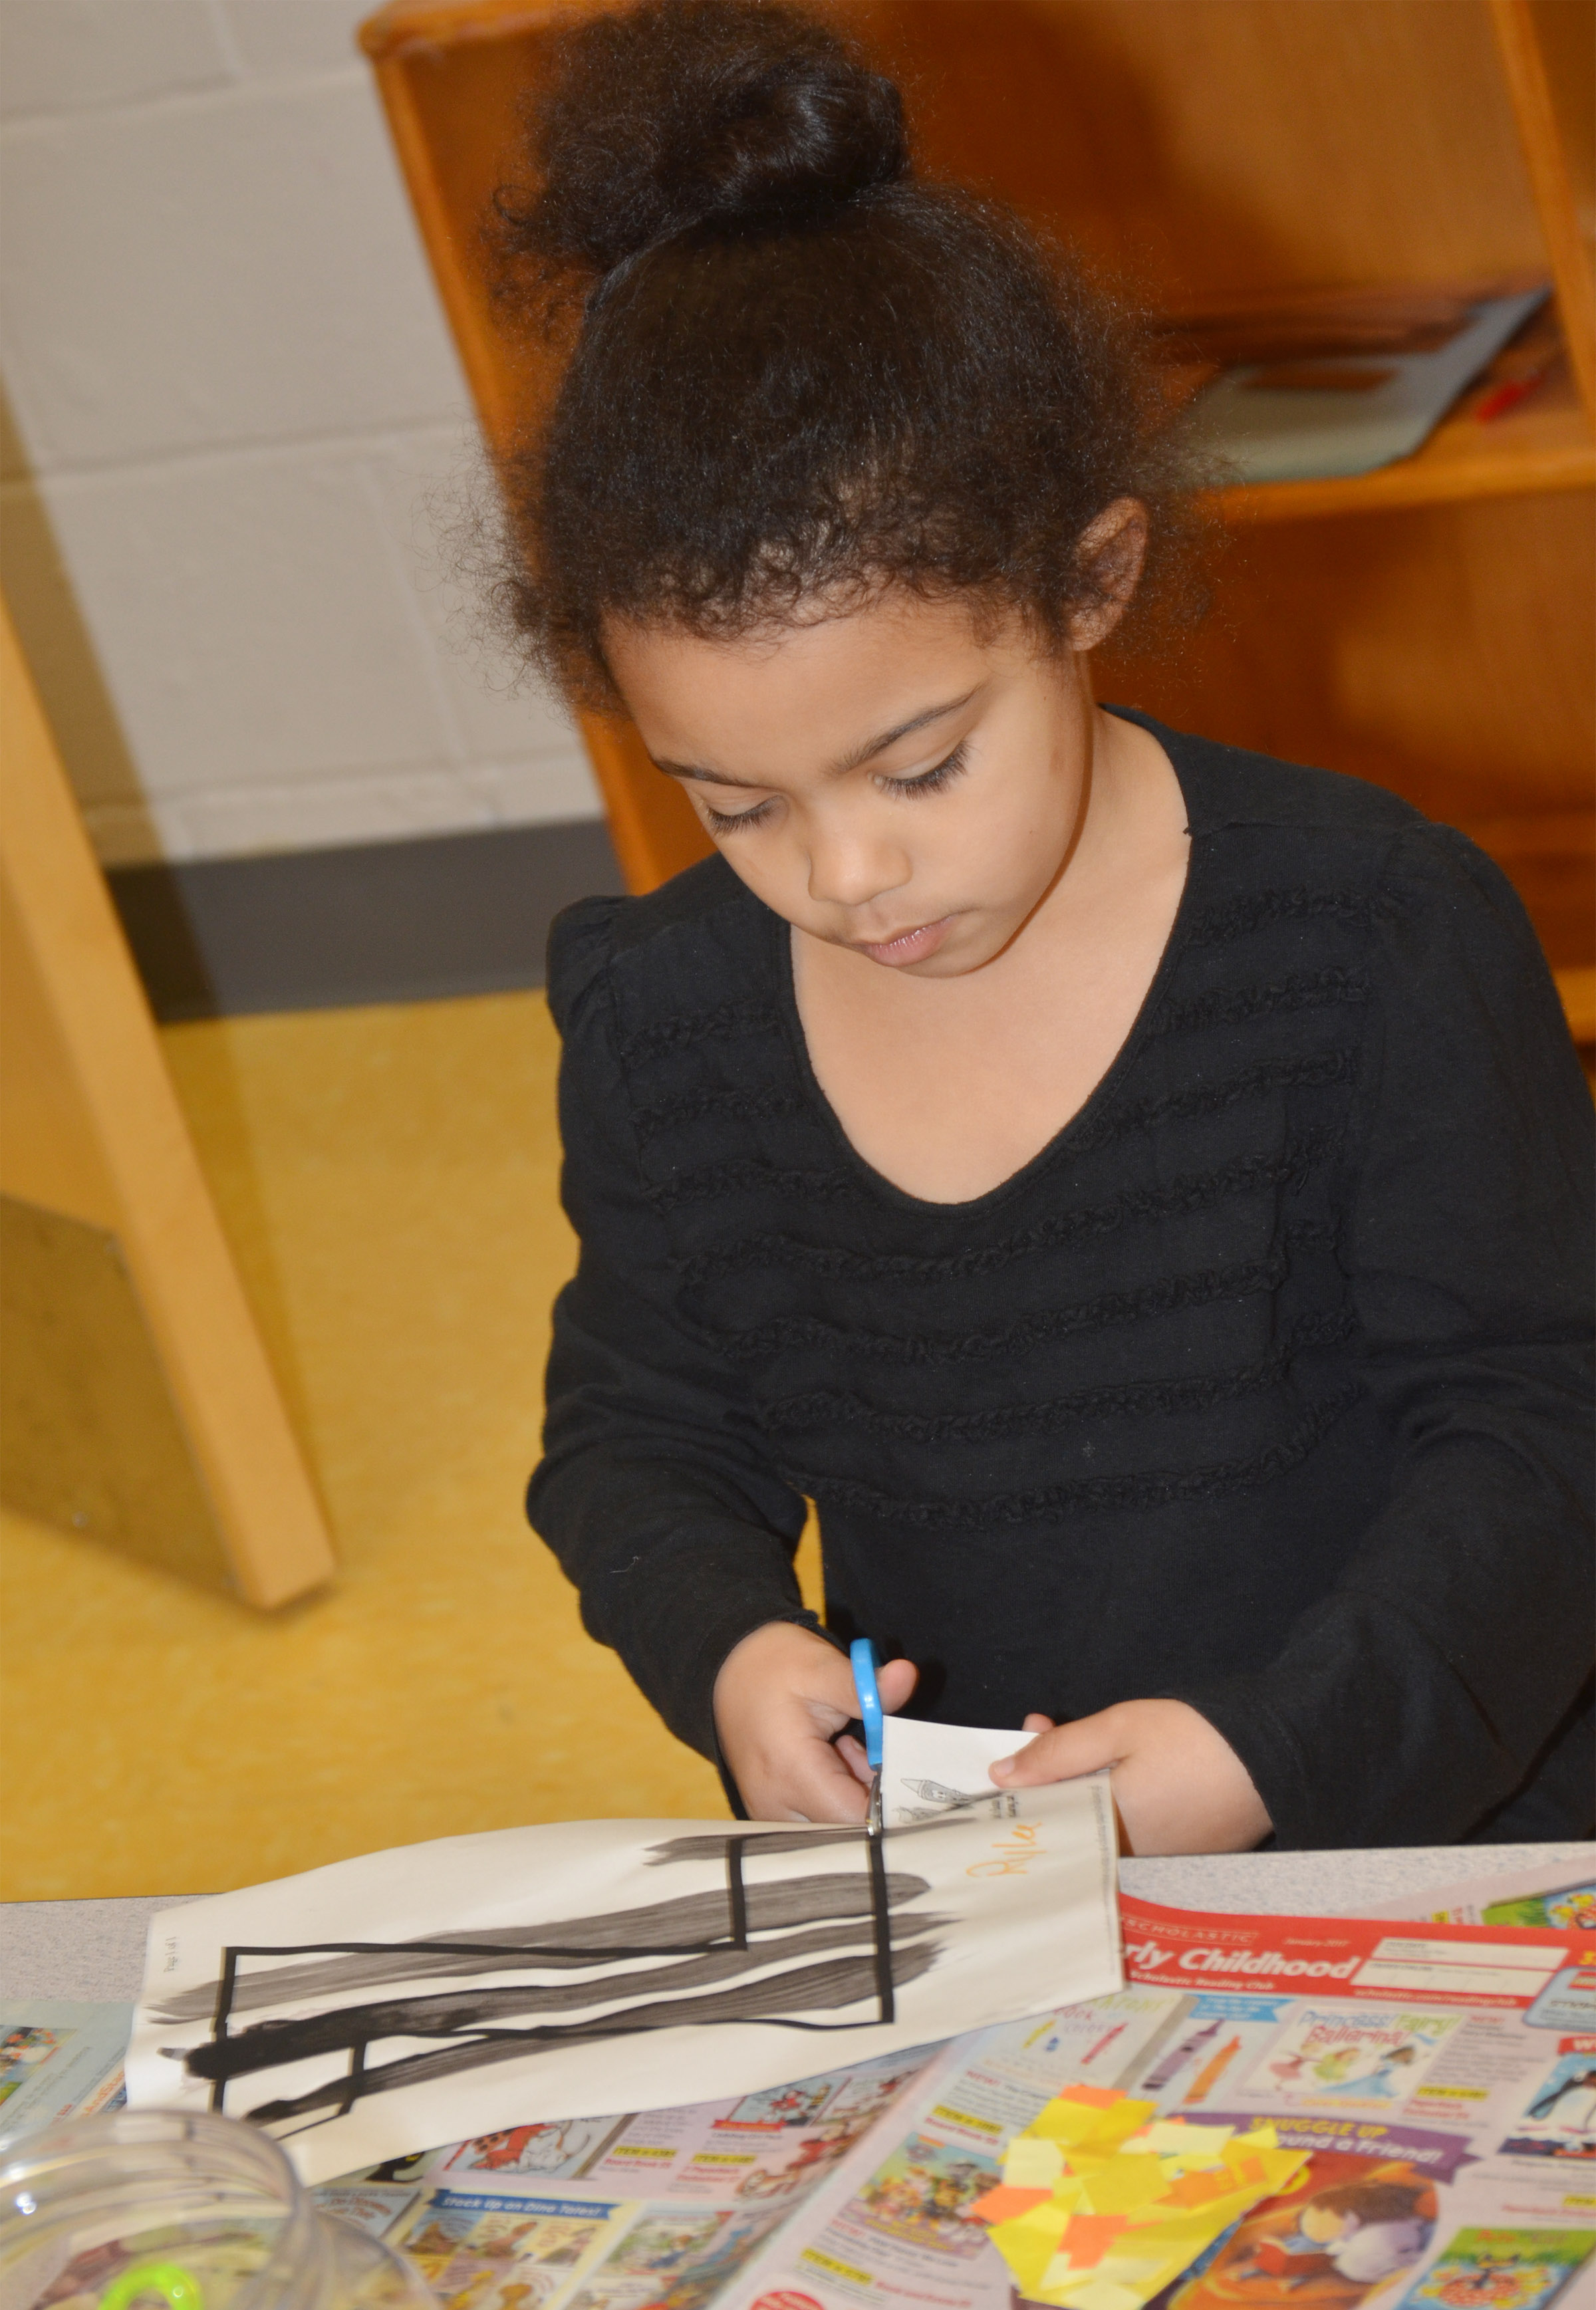 CES preschool student Rylee Karr cuts out her letter Z, which she striped with black paint.